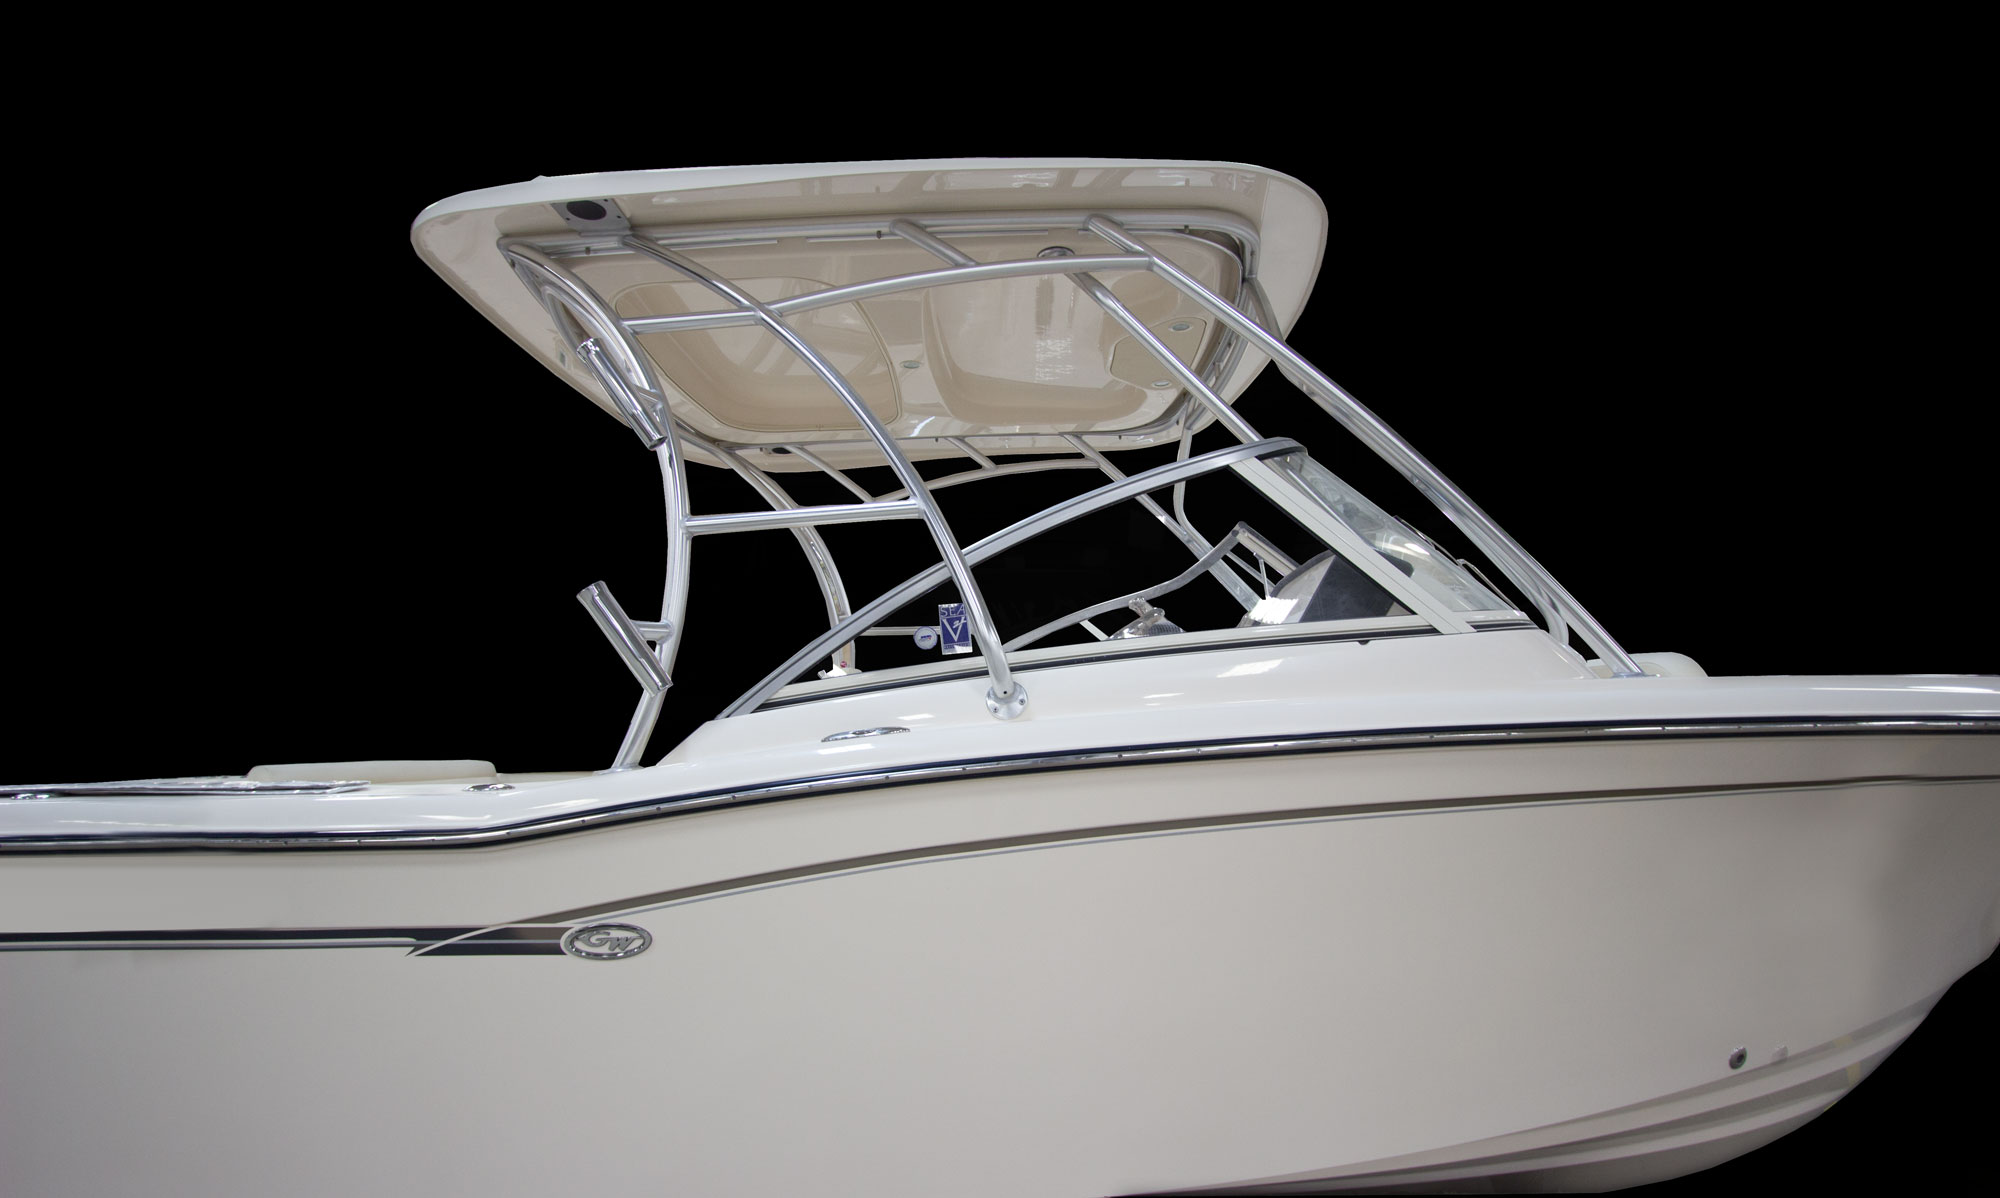 Grady-White Freedom 235 23-foot dual console hardtop frame